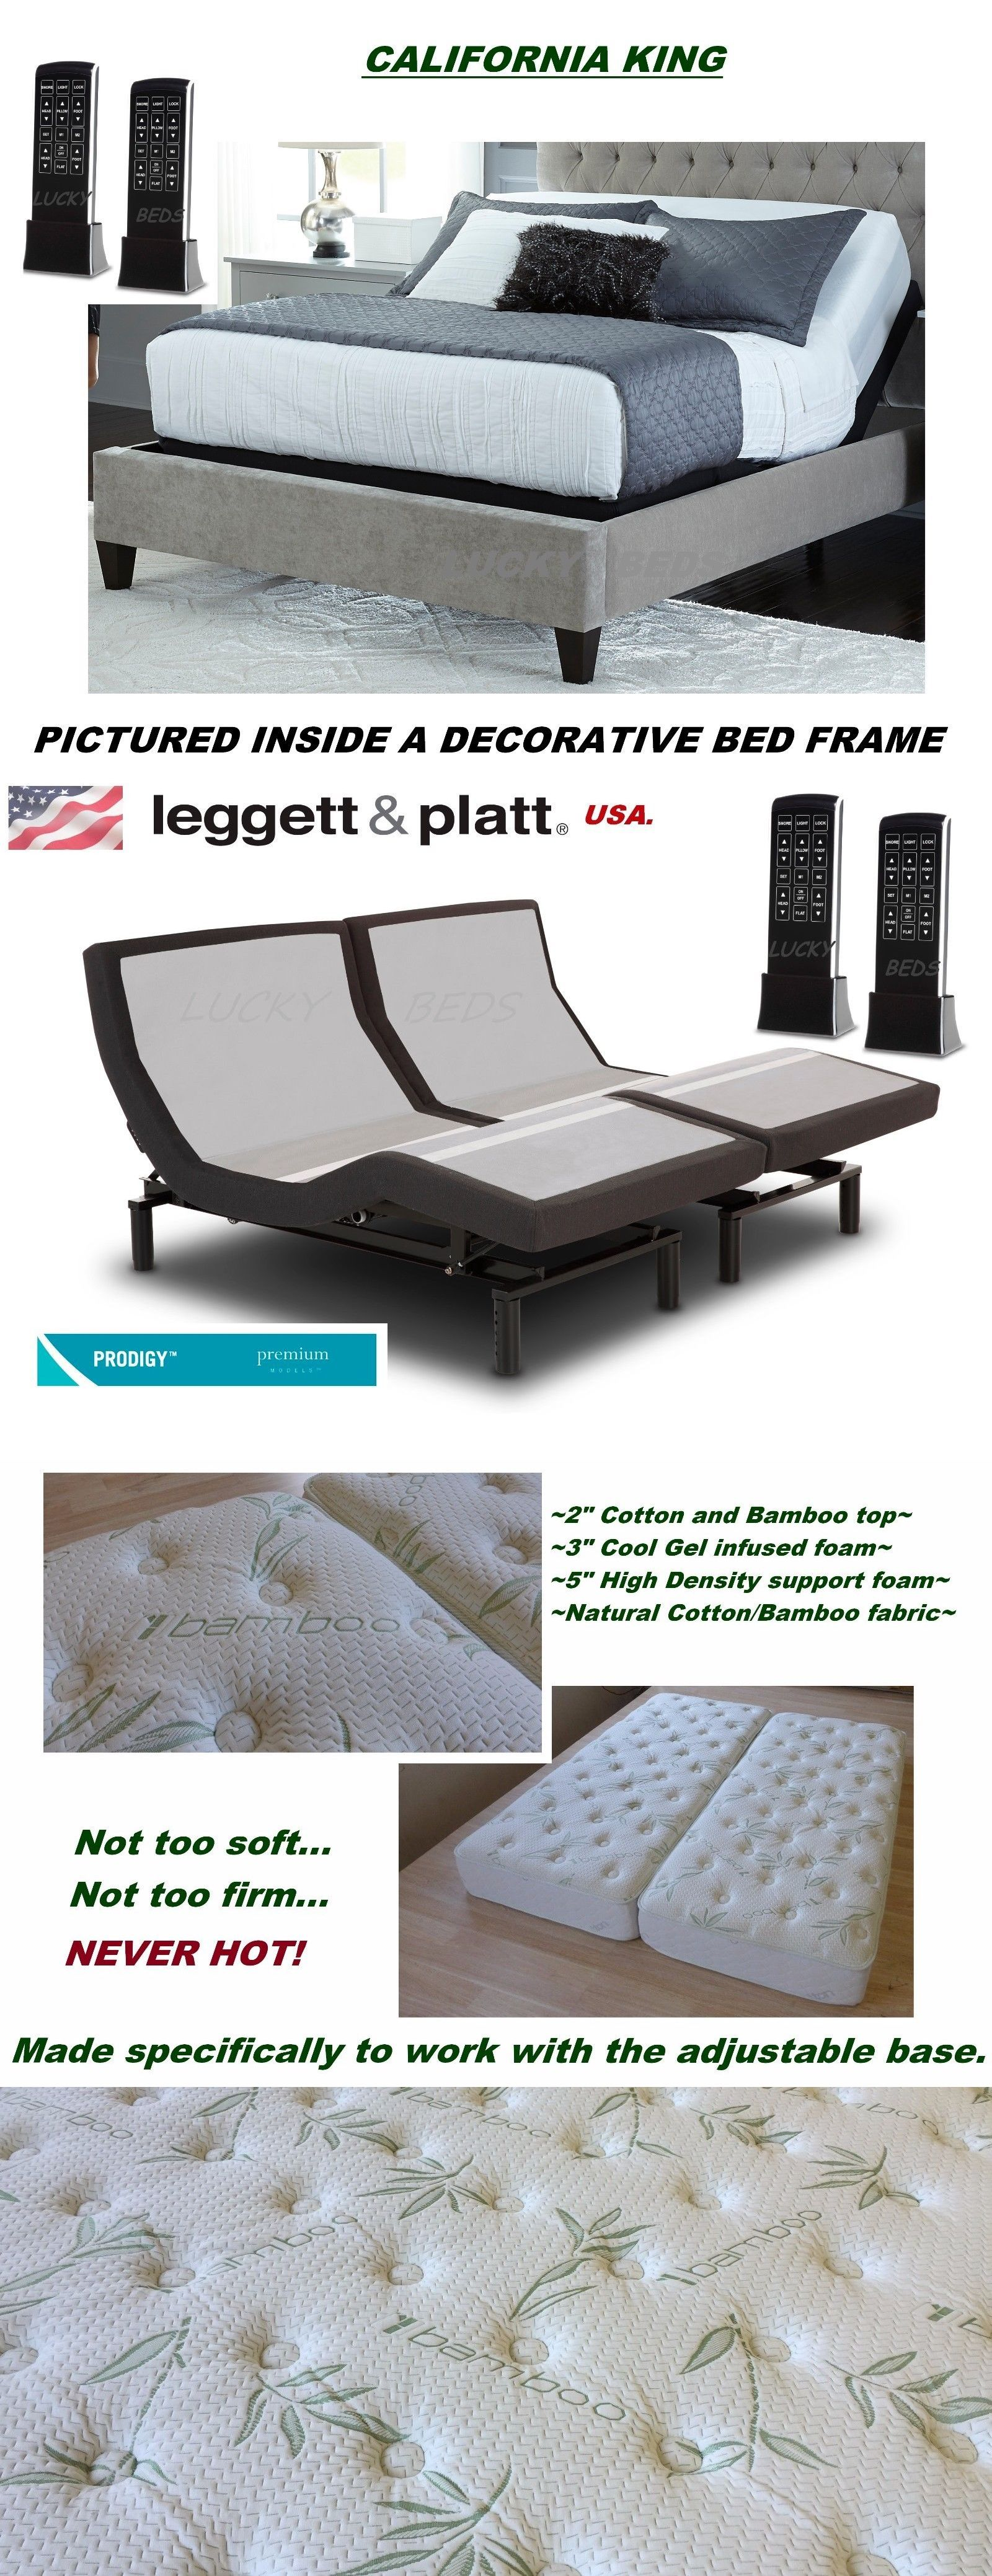 base bases for frames walmart twin xl and metal of mattresses adjustable platt frame it sleep awesomes leggett size on legget renew full winning queen steel bed